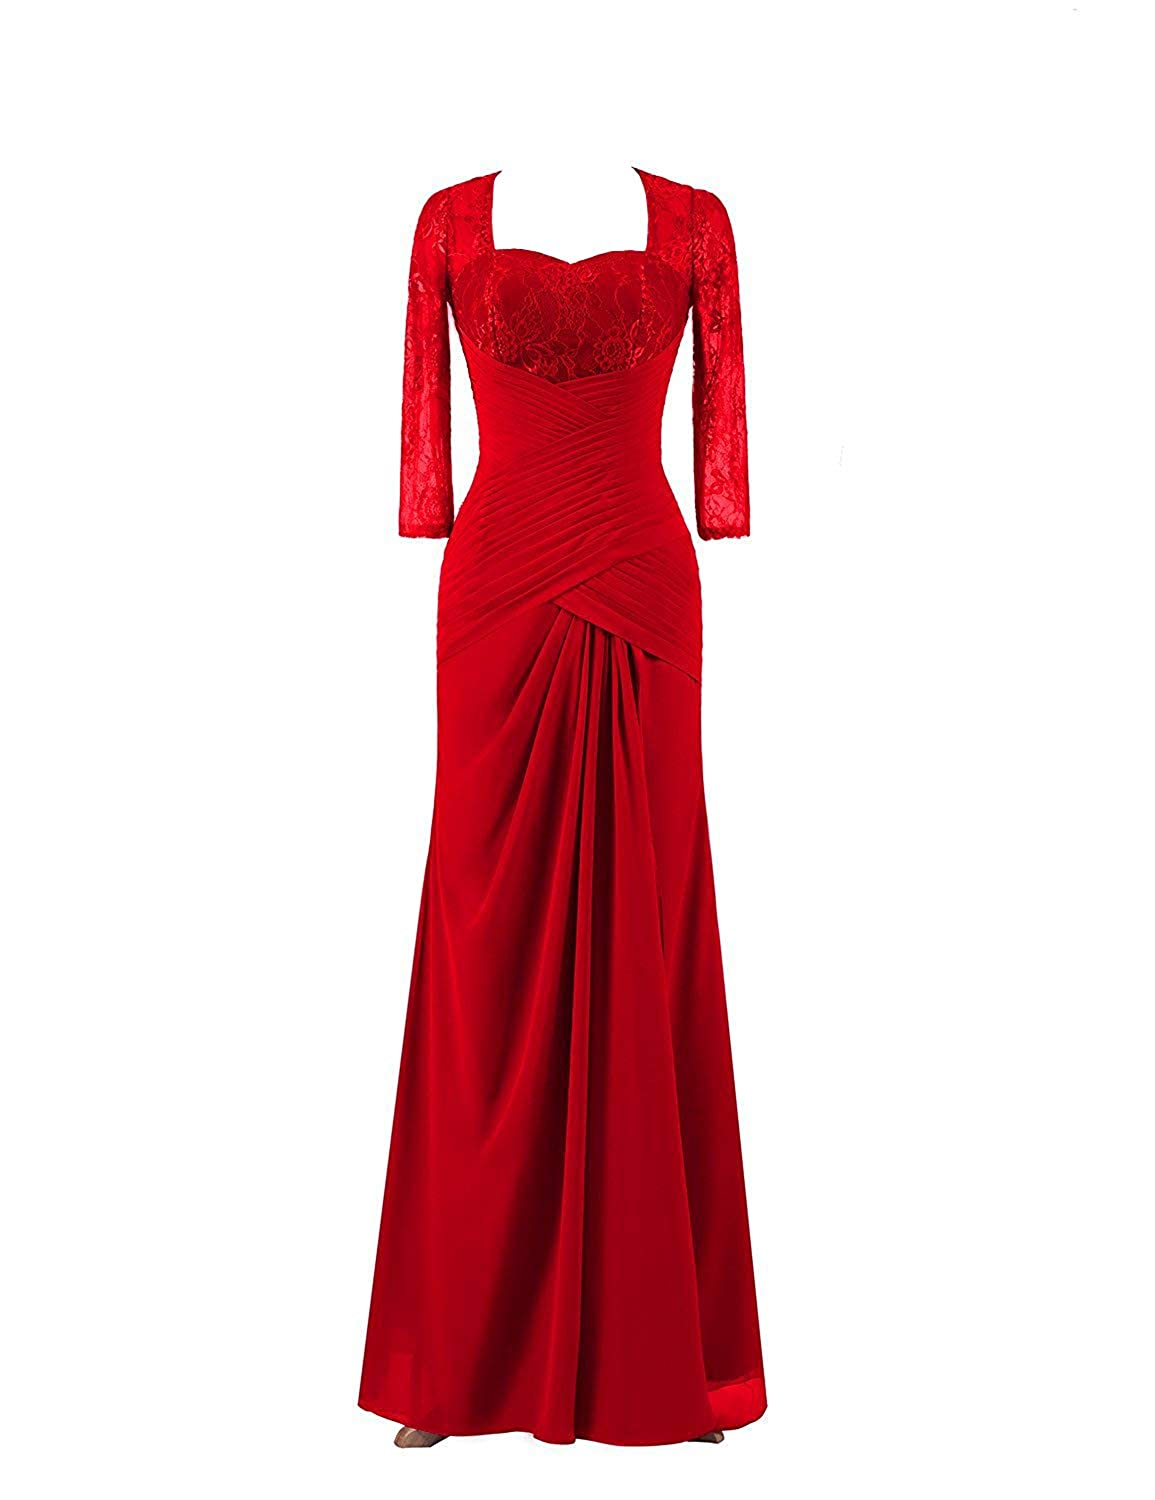 Red Mother of The Bride Dresses with Long Sleeves Plus Size Evening Gown Lace Mothers Dress Formal Gowns